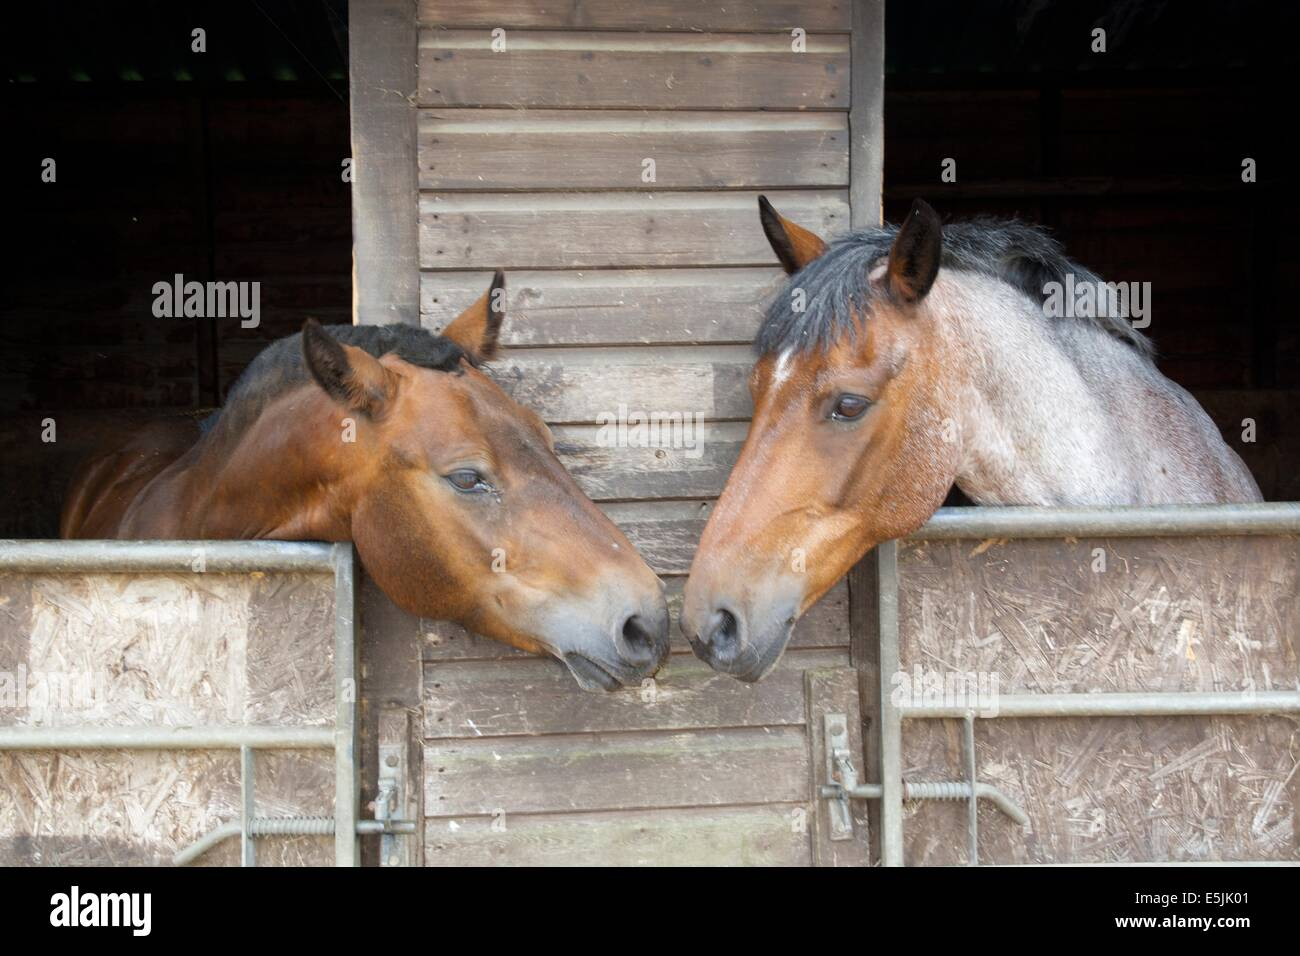 2 Horses Nose To